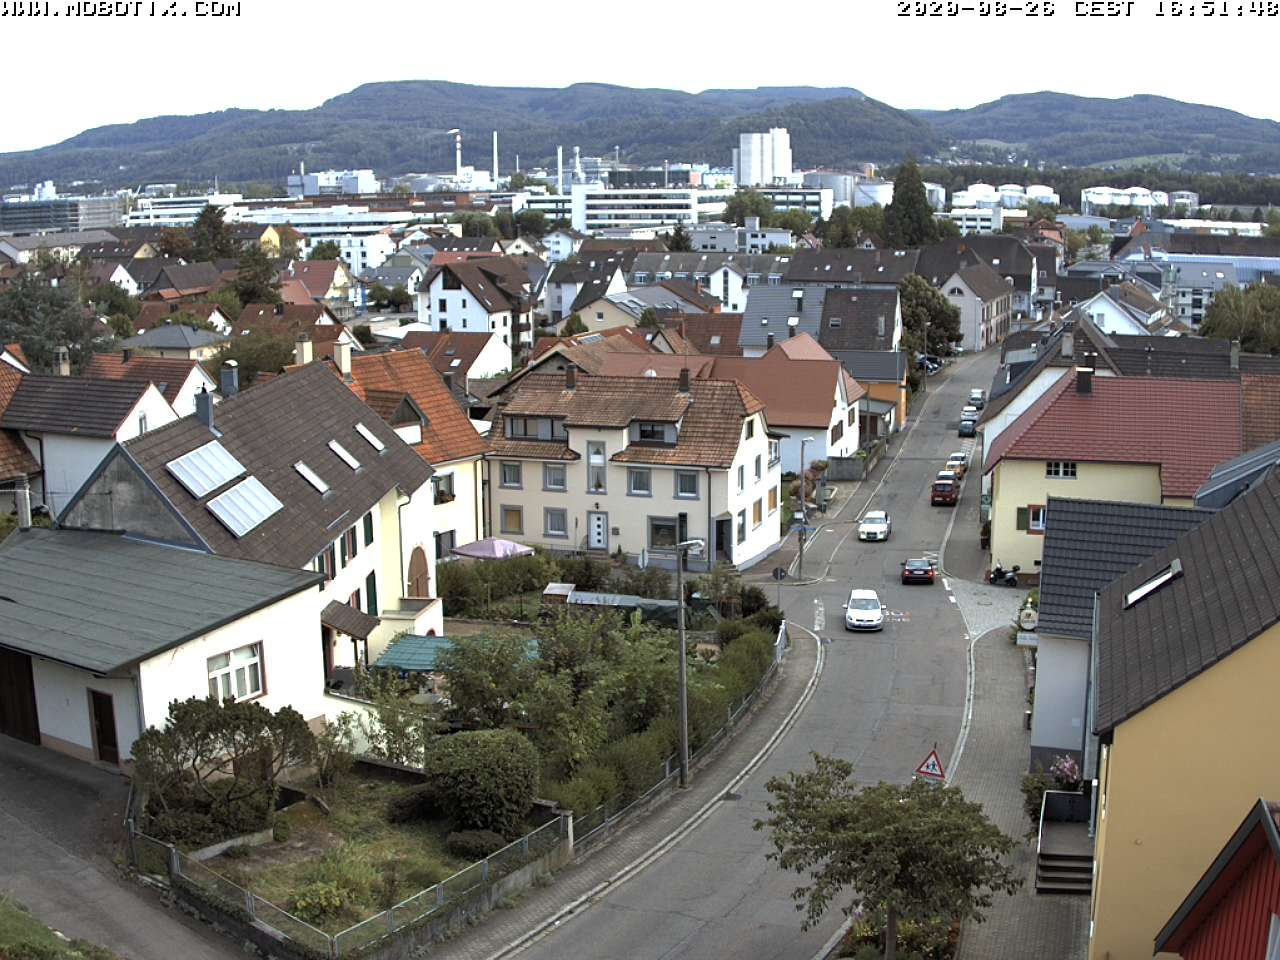 http://www.grenzach-wyhlen.de/webcam/webcam/current.jpg